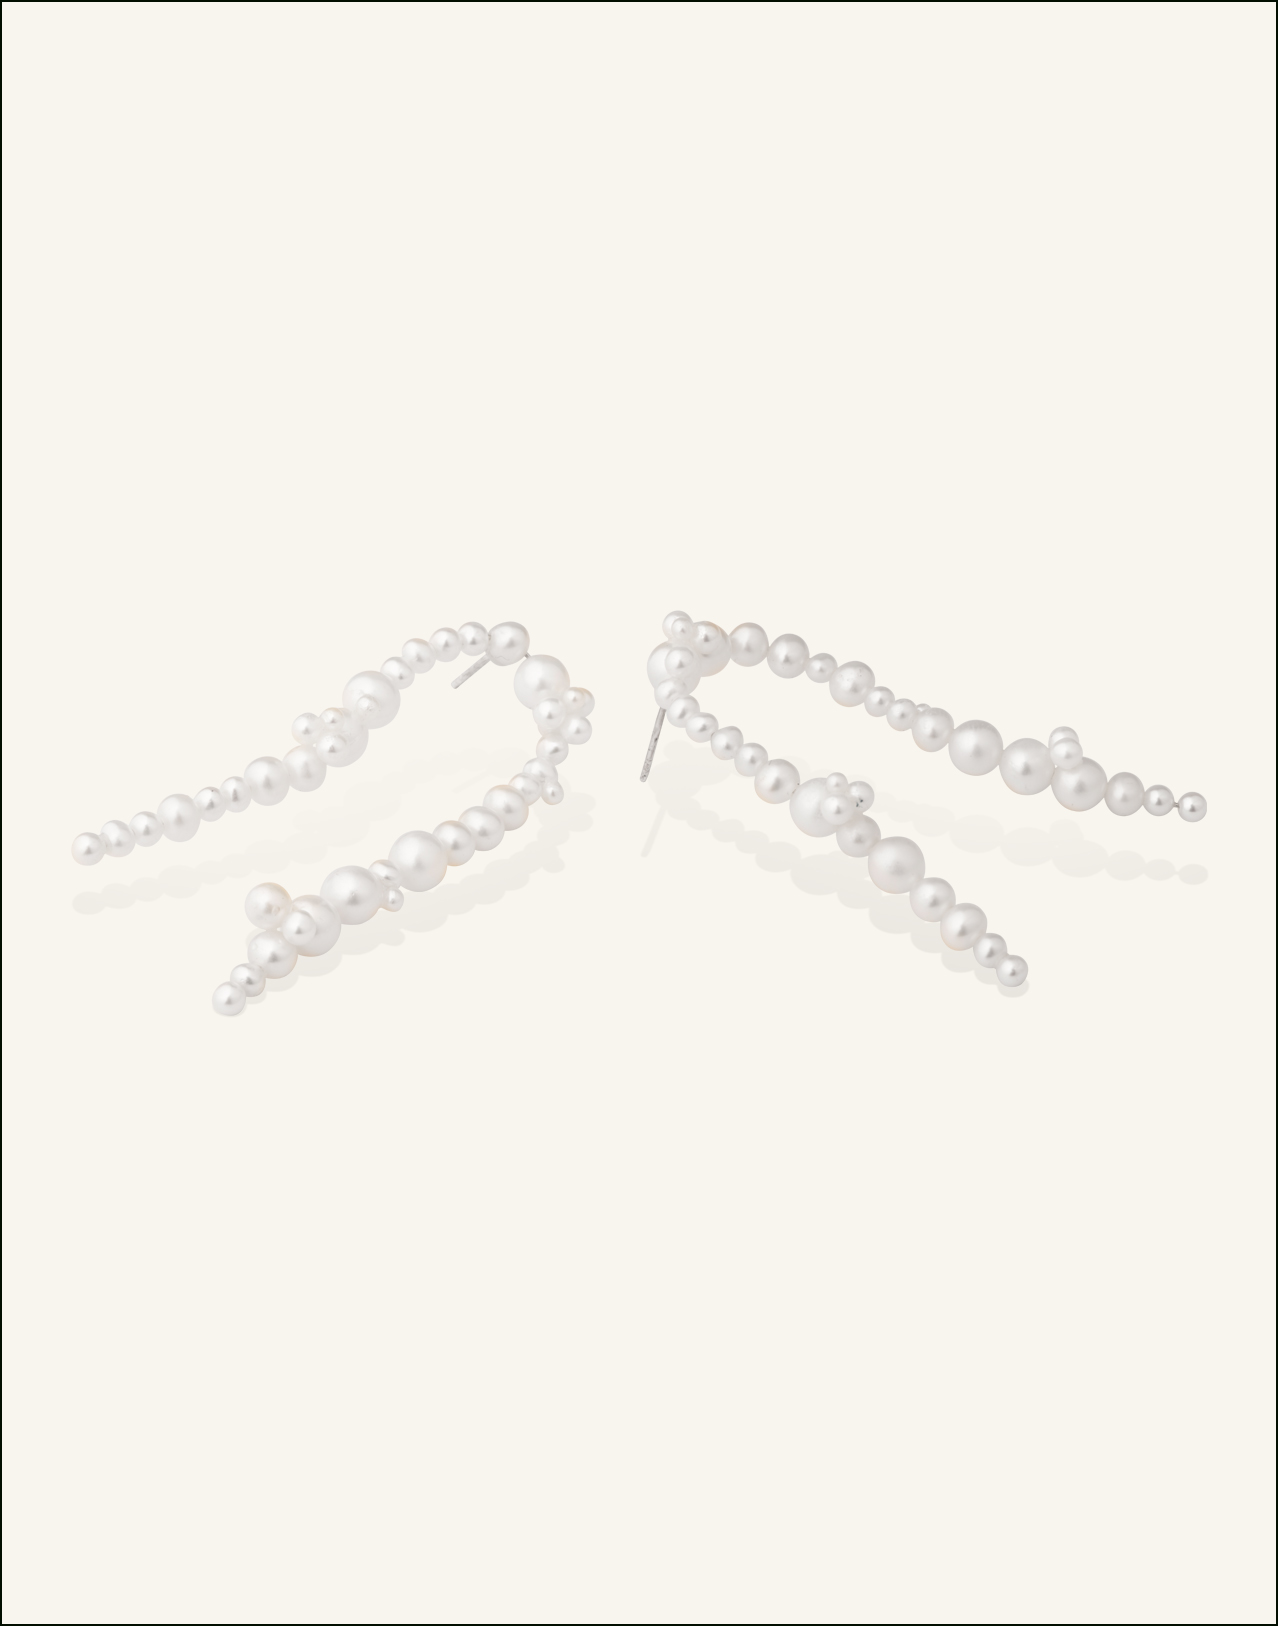 Completedworks-Earrings-The-Phases-of-the-Moon-3-1.jpg